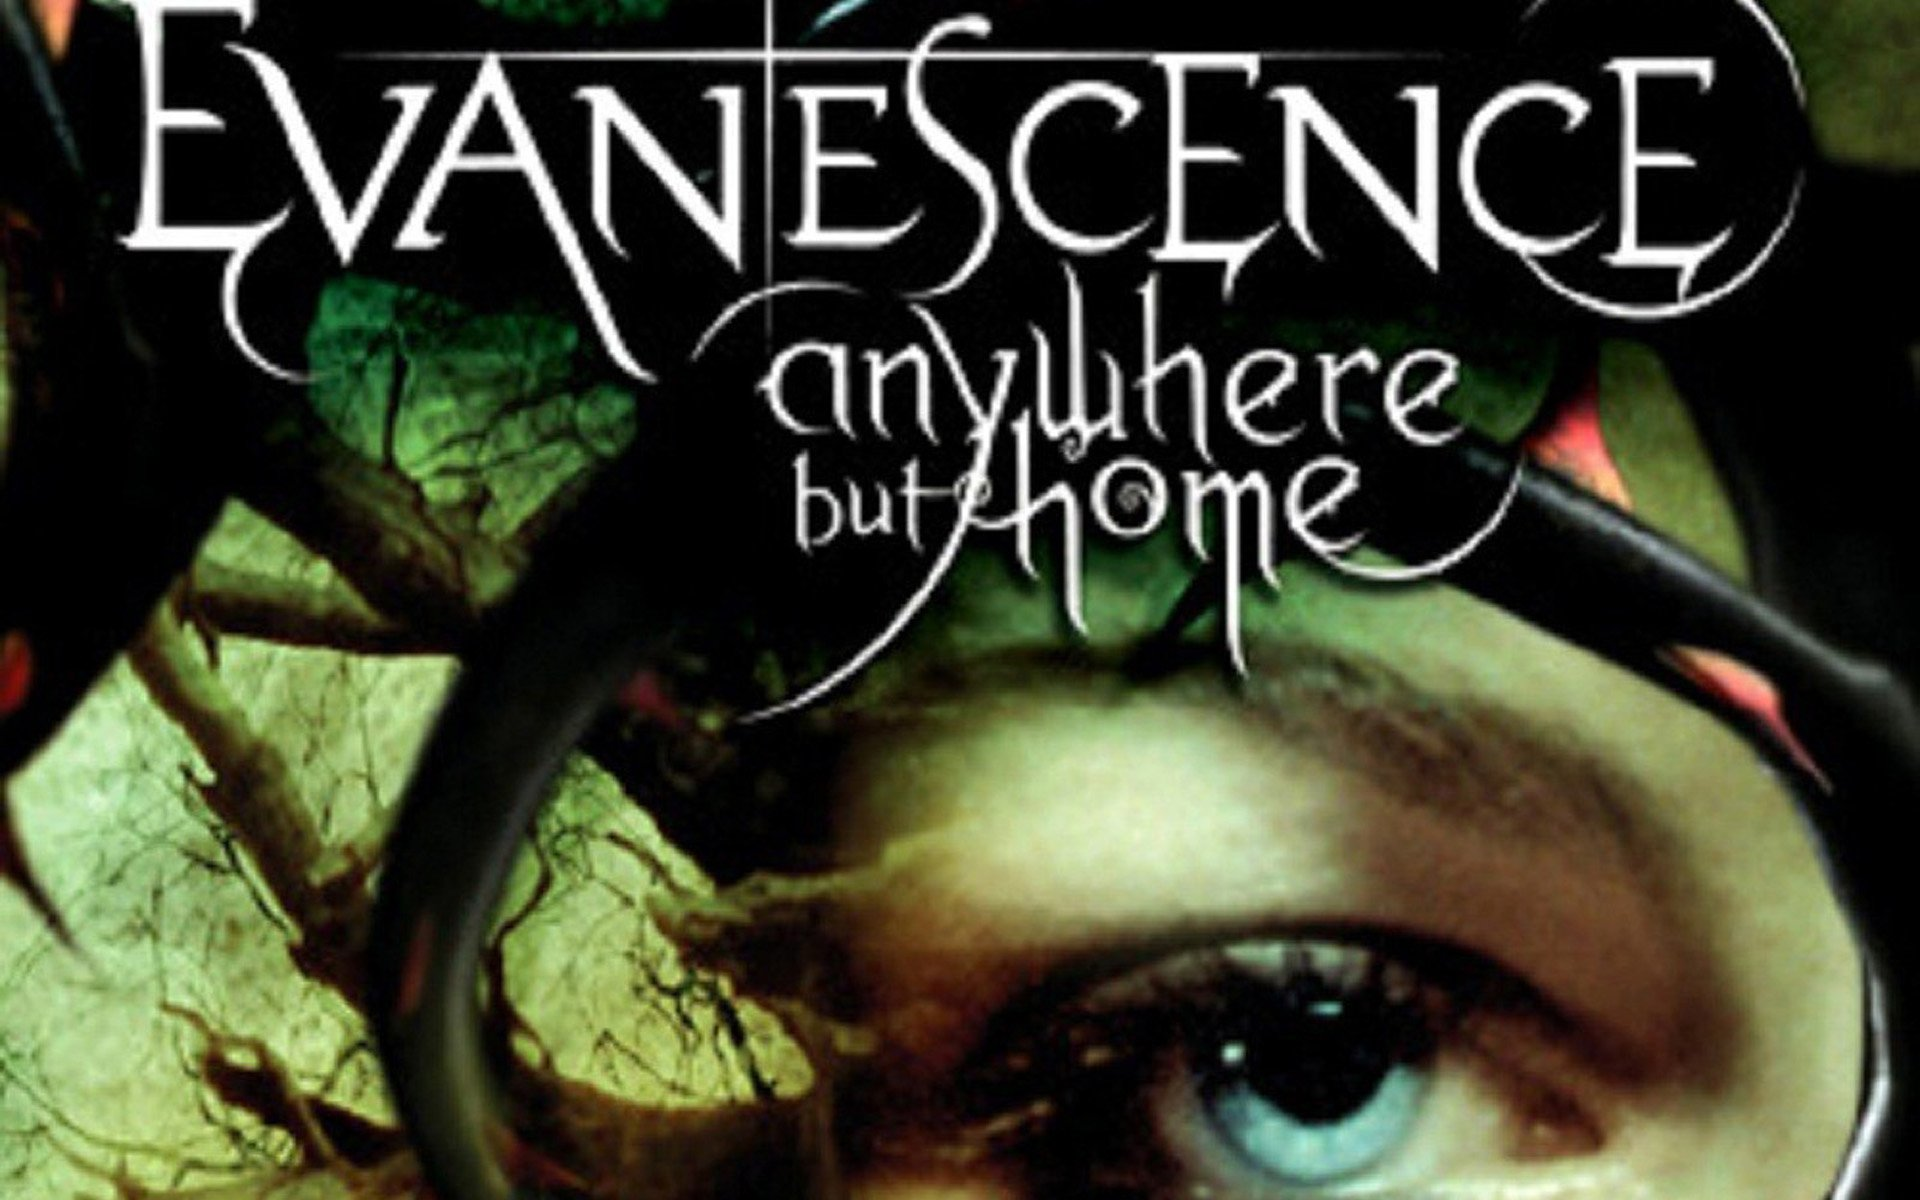 Evanescence Anywhere But Home 1920x1200 Wallpapers 1920x1200 1920x1200